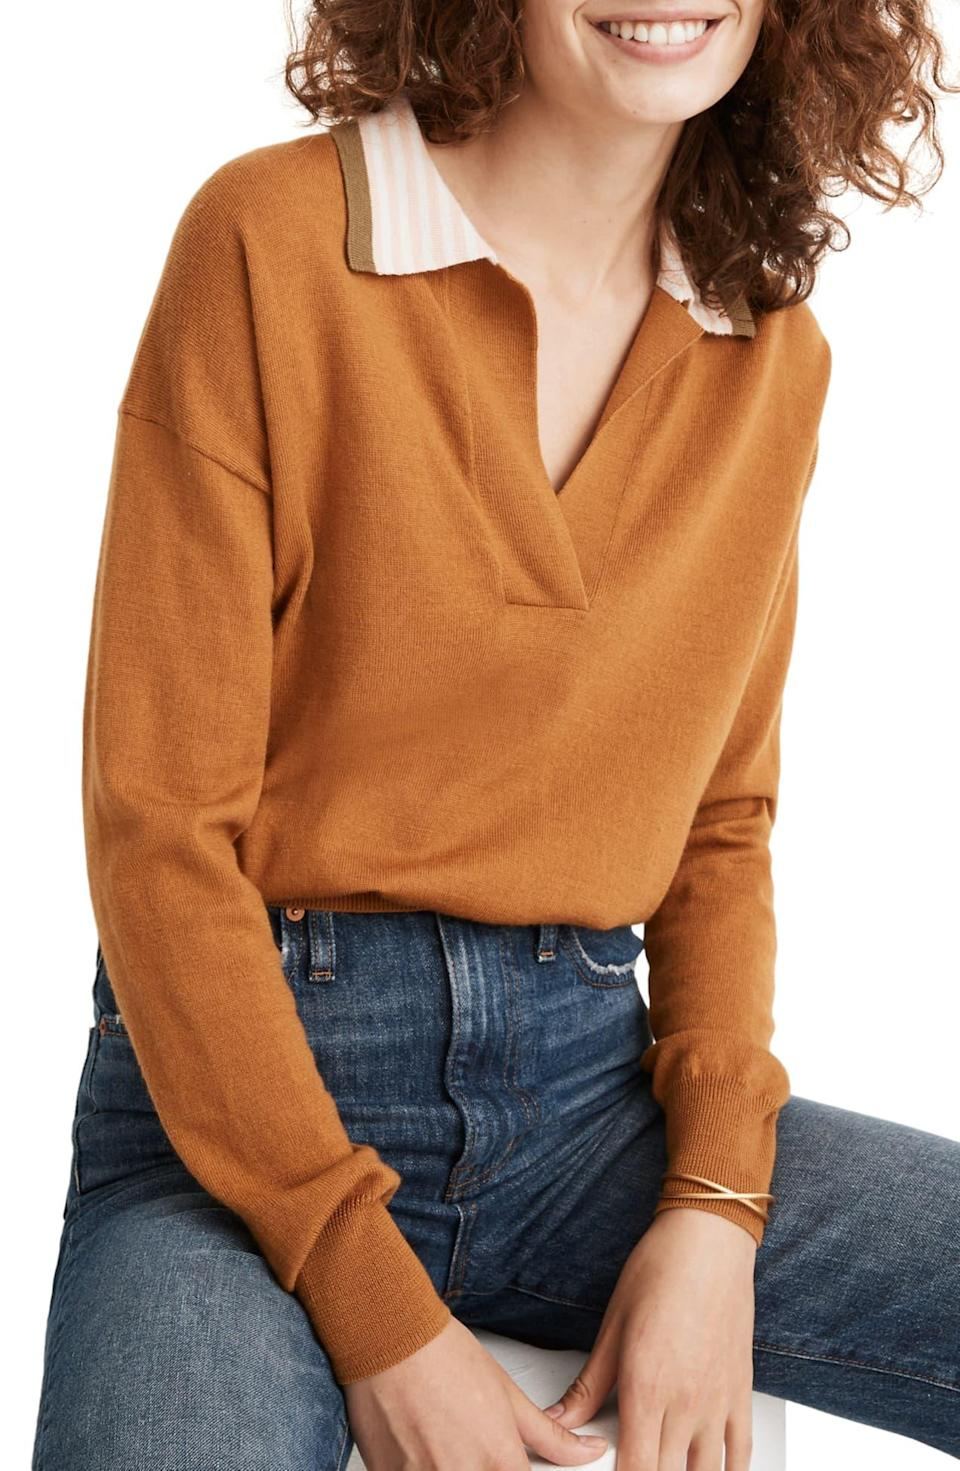 """<h2>Madewell</h2><br>Cardigans, sweaters, dresses, and more are all currently up to 65% off.<br><br>Shop <strong><em><a href=""""https://fave.co/399knWR"""" rel=""""nofollow noopener"""" target=""""_blank"""" data-ylk=""""slk:Madewell"""" class=""""link rapid-noclick-resp"""">Madewell</a></em></strong><br><br><strong>Madewell</strong> Colorblock Polo Sweater, $, available at <a href=""""https://go.skimresources.com/?id=30283X879131&url=https%3A%2F%2Fwww.nordstromrack.com%2Fs%2Fmadewell-colorblock-polo-sweater%2F5732456"""" rel=""""nofollow noopener"""" target=""""_blank"""" data-ylk=""""slk:Nordstrom Rack"""" class=""""link rapid-noclick-resp"""">Nordstrom Rack</a>"""